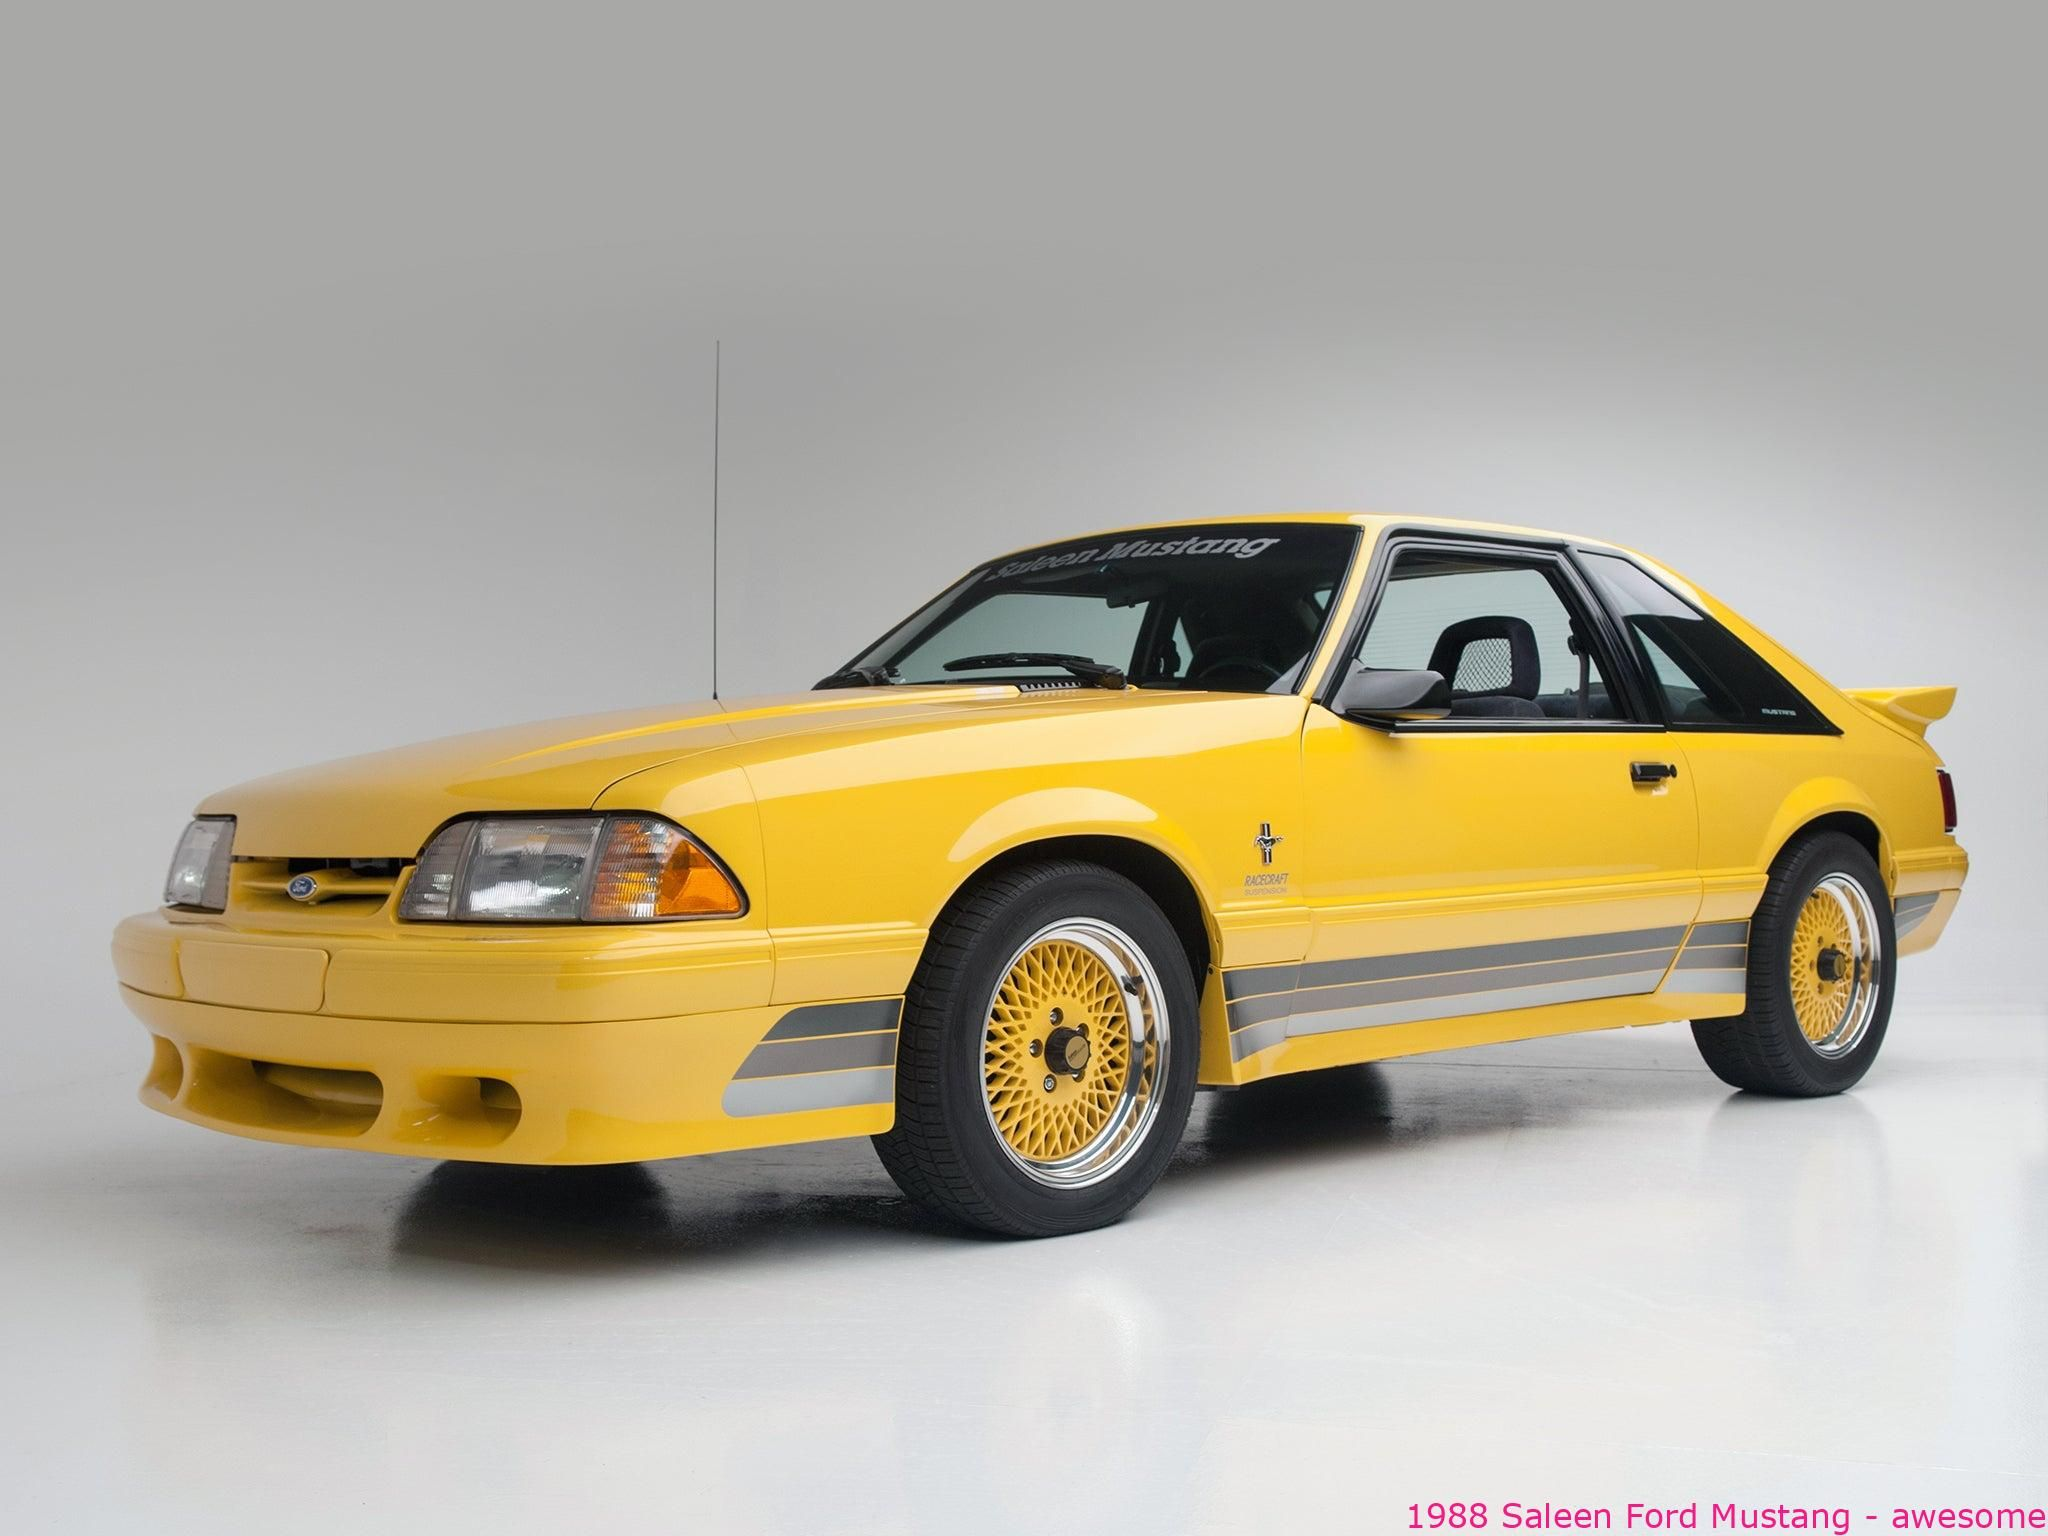 Cars 1988 Saleen Ford Mustang Awesome In 2020 Ford Mustang Ford Mustang Saleen Mustang